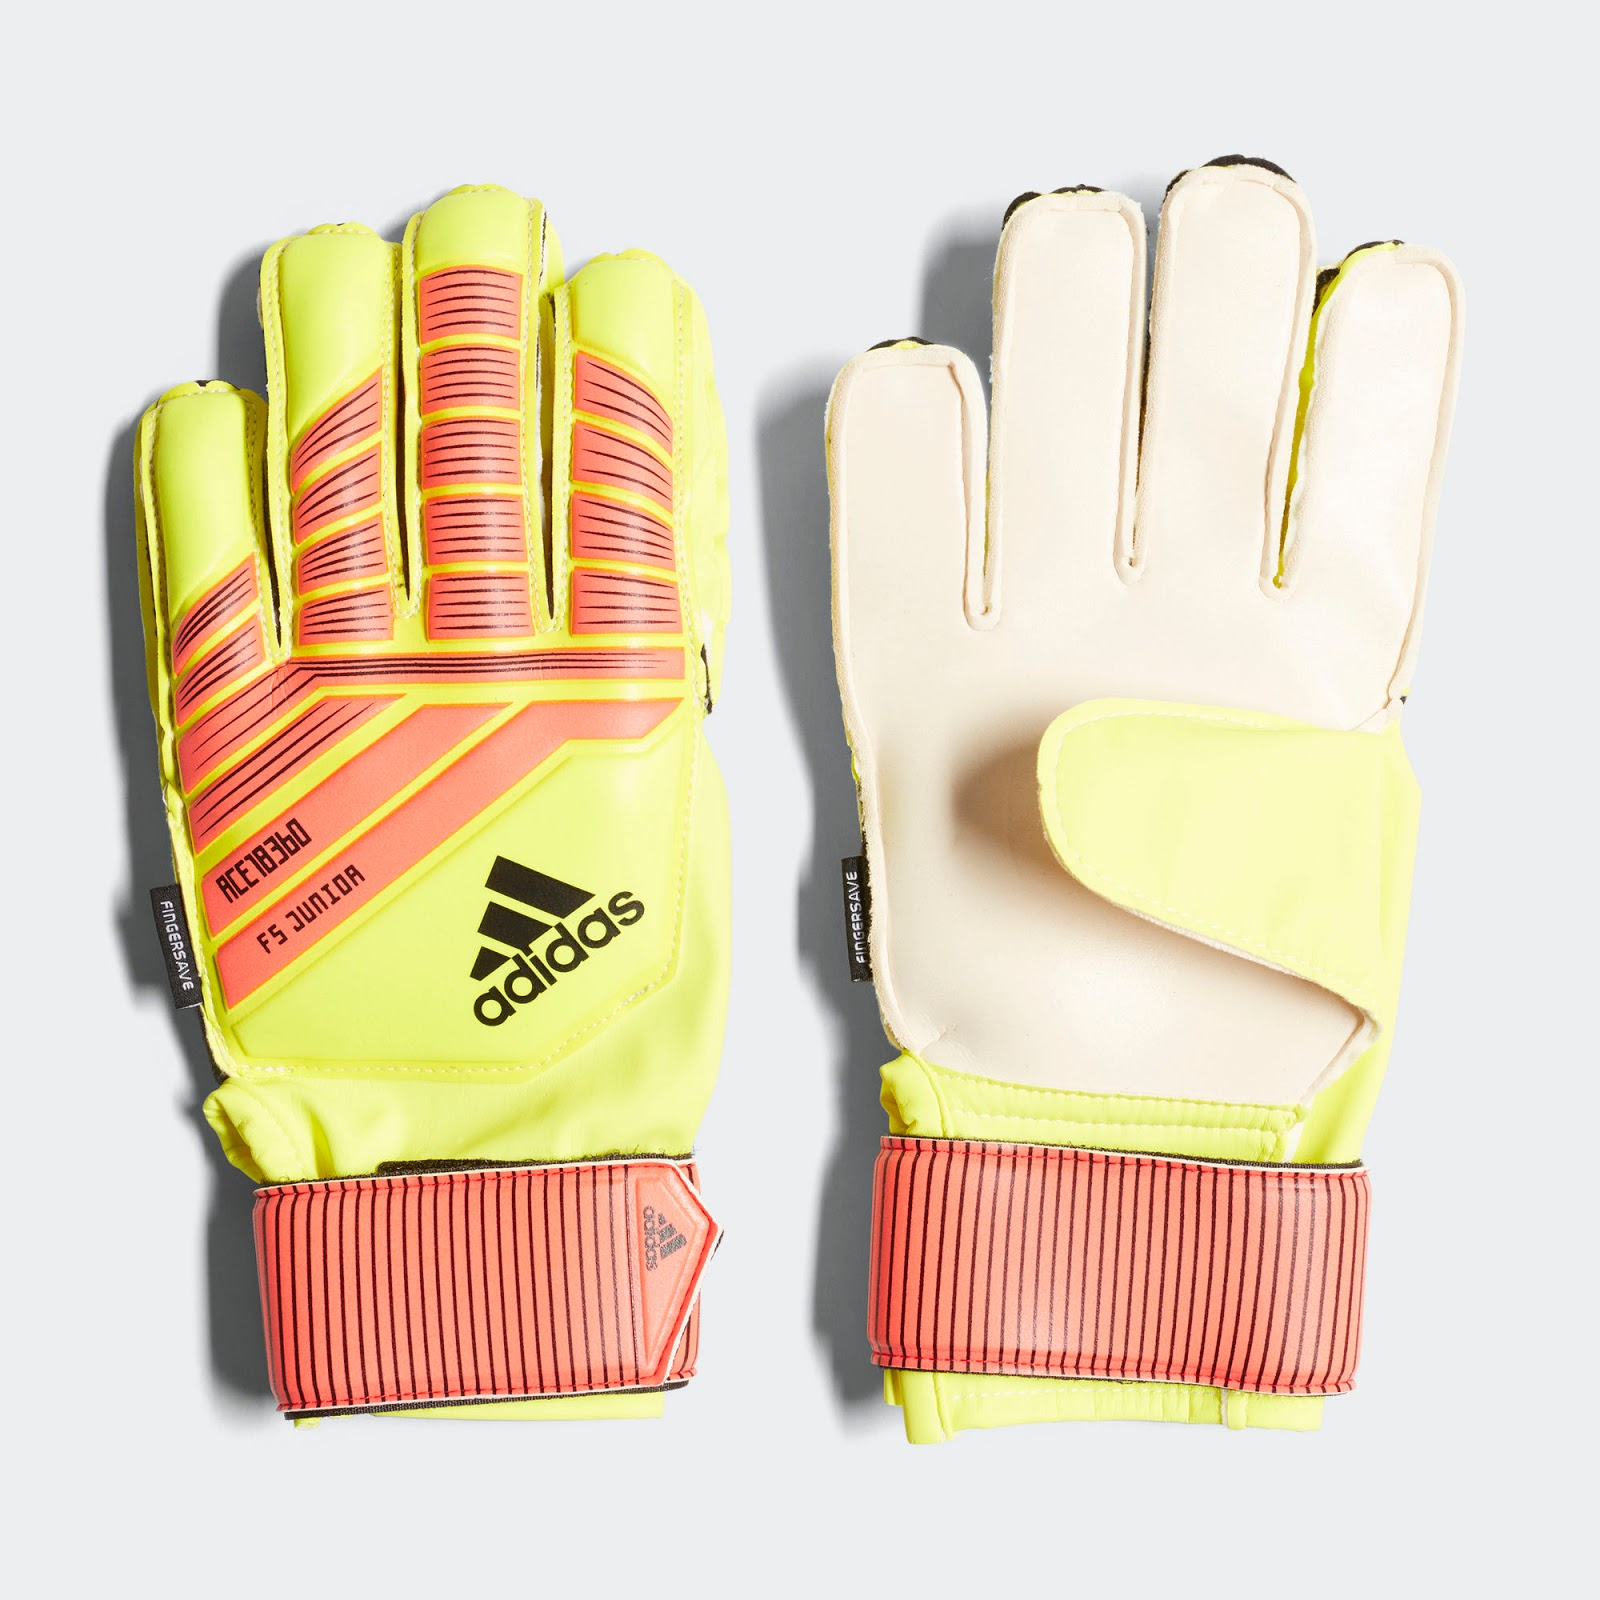 f2df8c857530 ... get a striking look the adidas predator pro 18 2018 world cup gloves  are hi vis